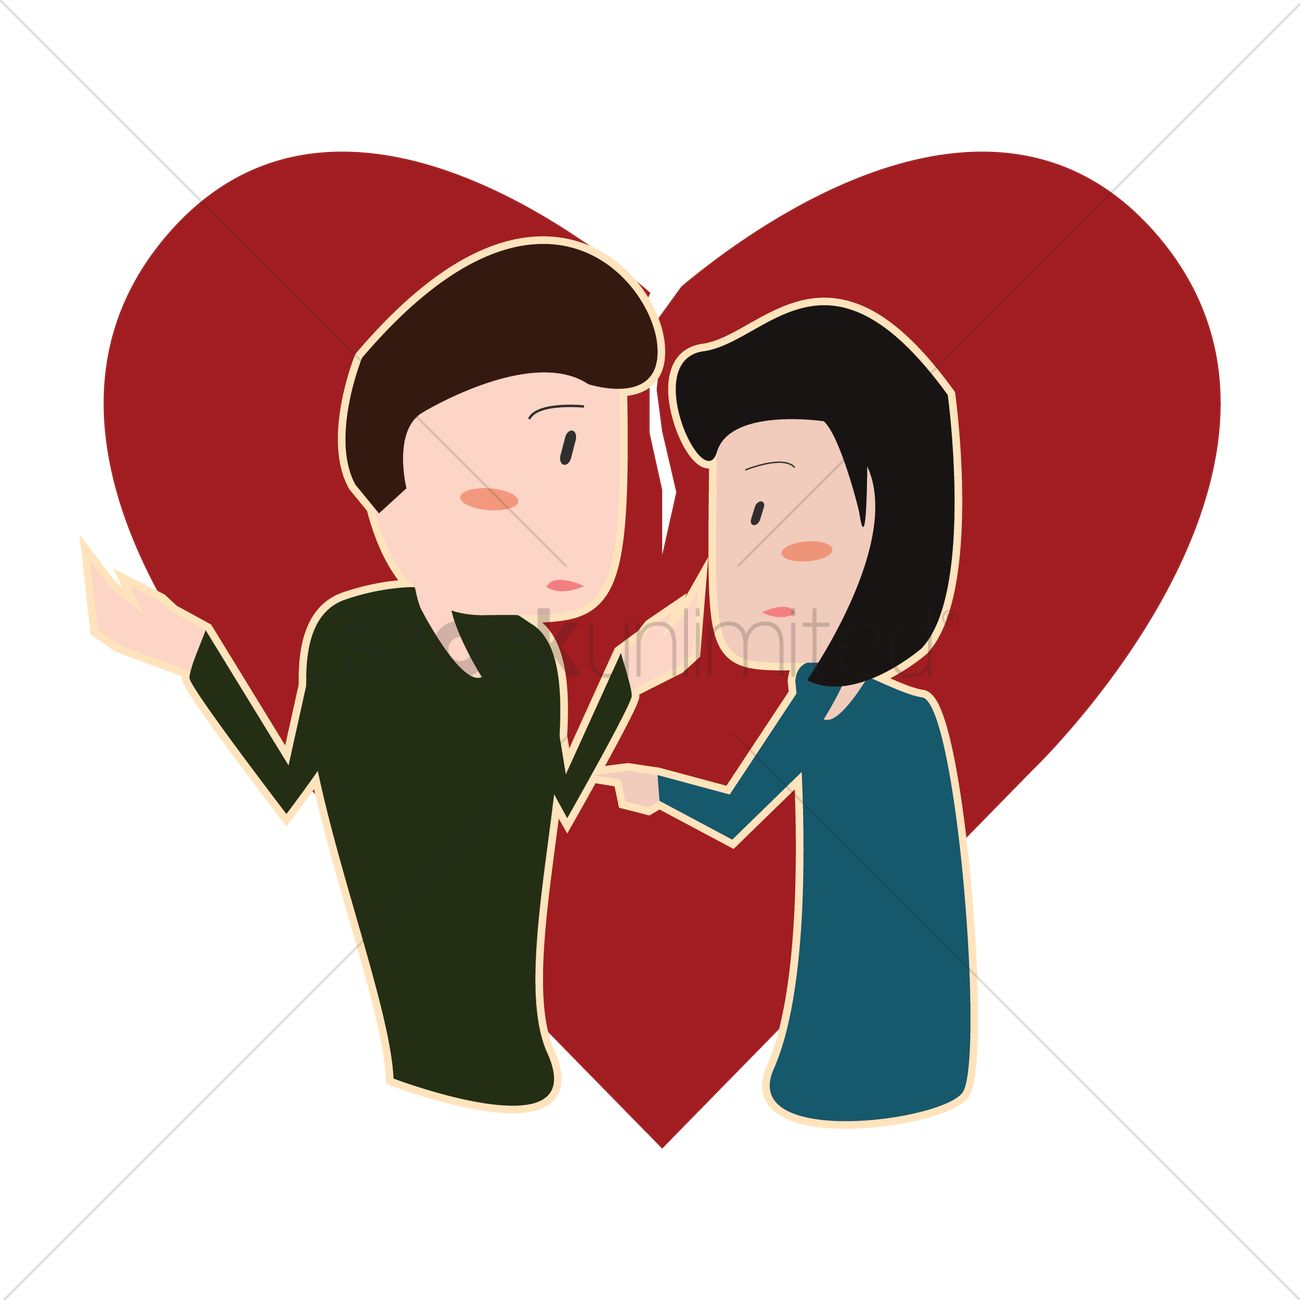 Couple in a romantic relationship Vector Image - 1305959